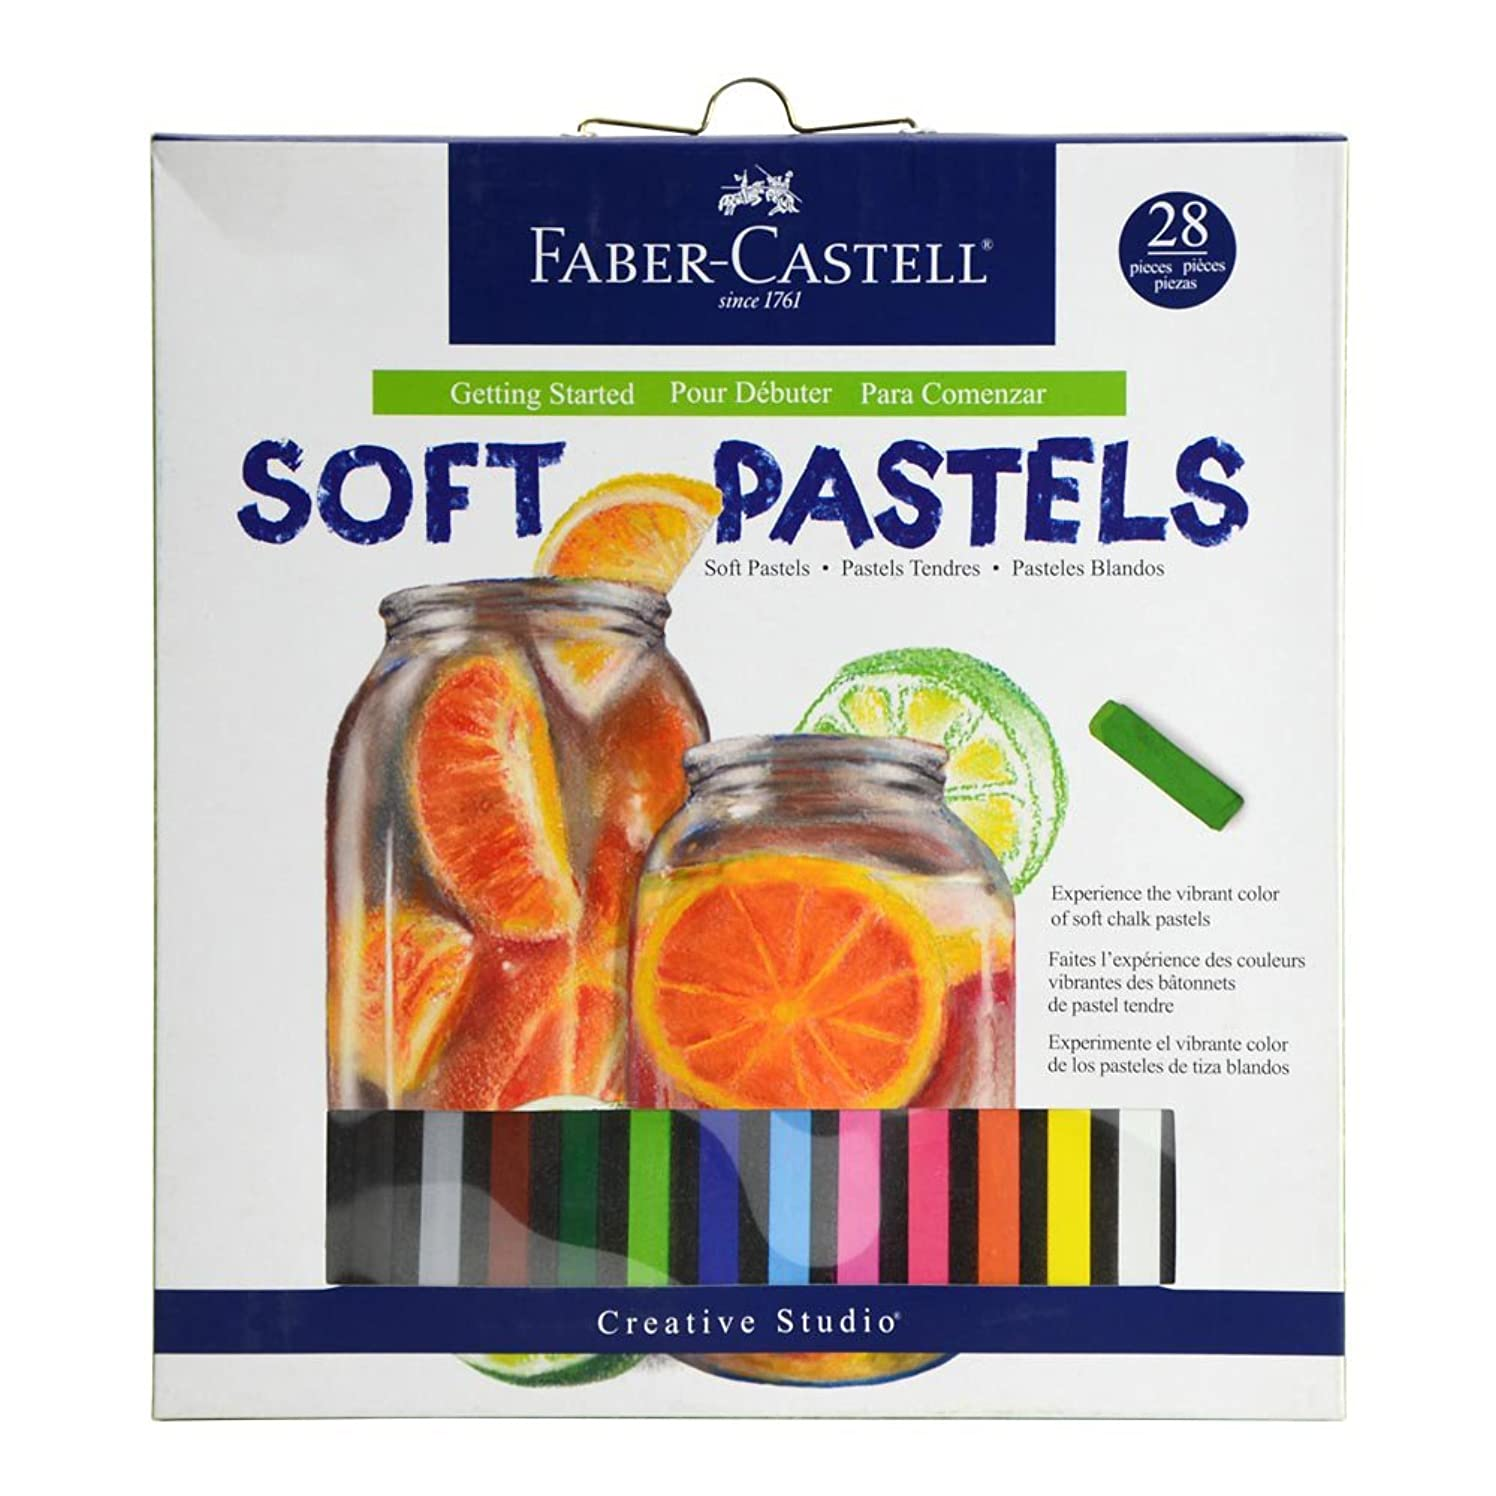 Faber Castell Getting Started: Soft Pastels